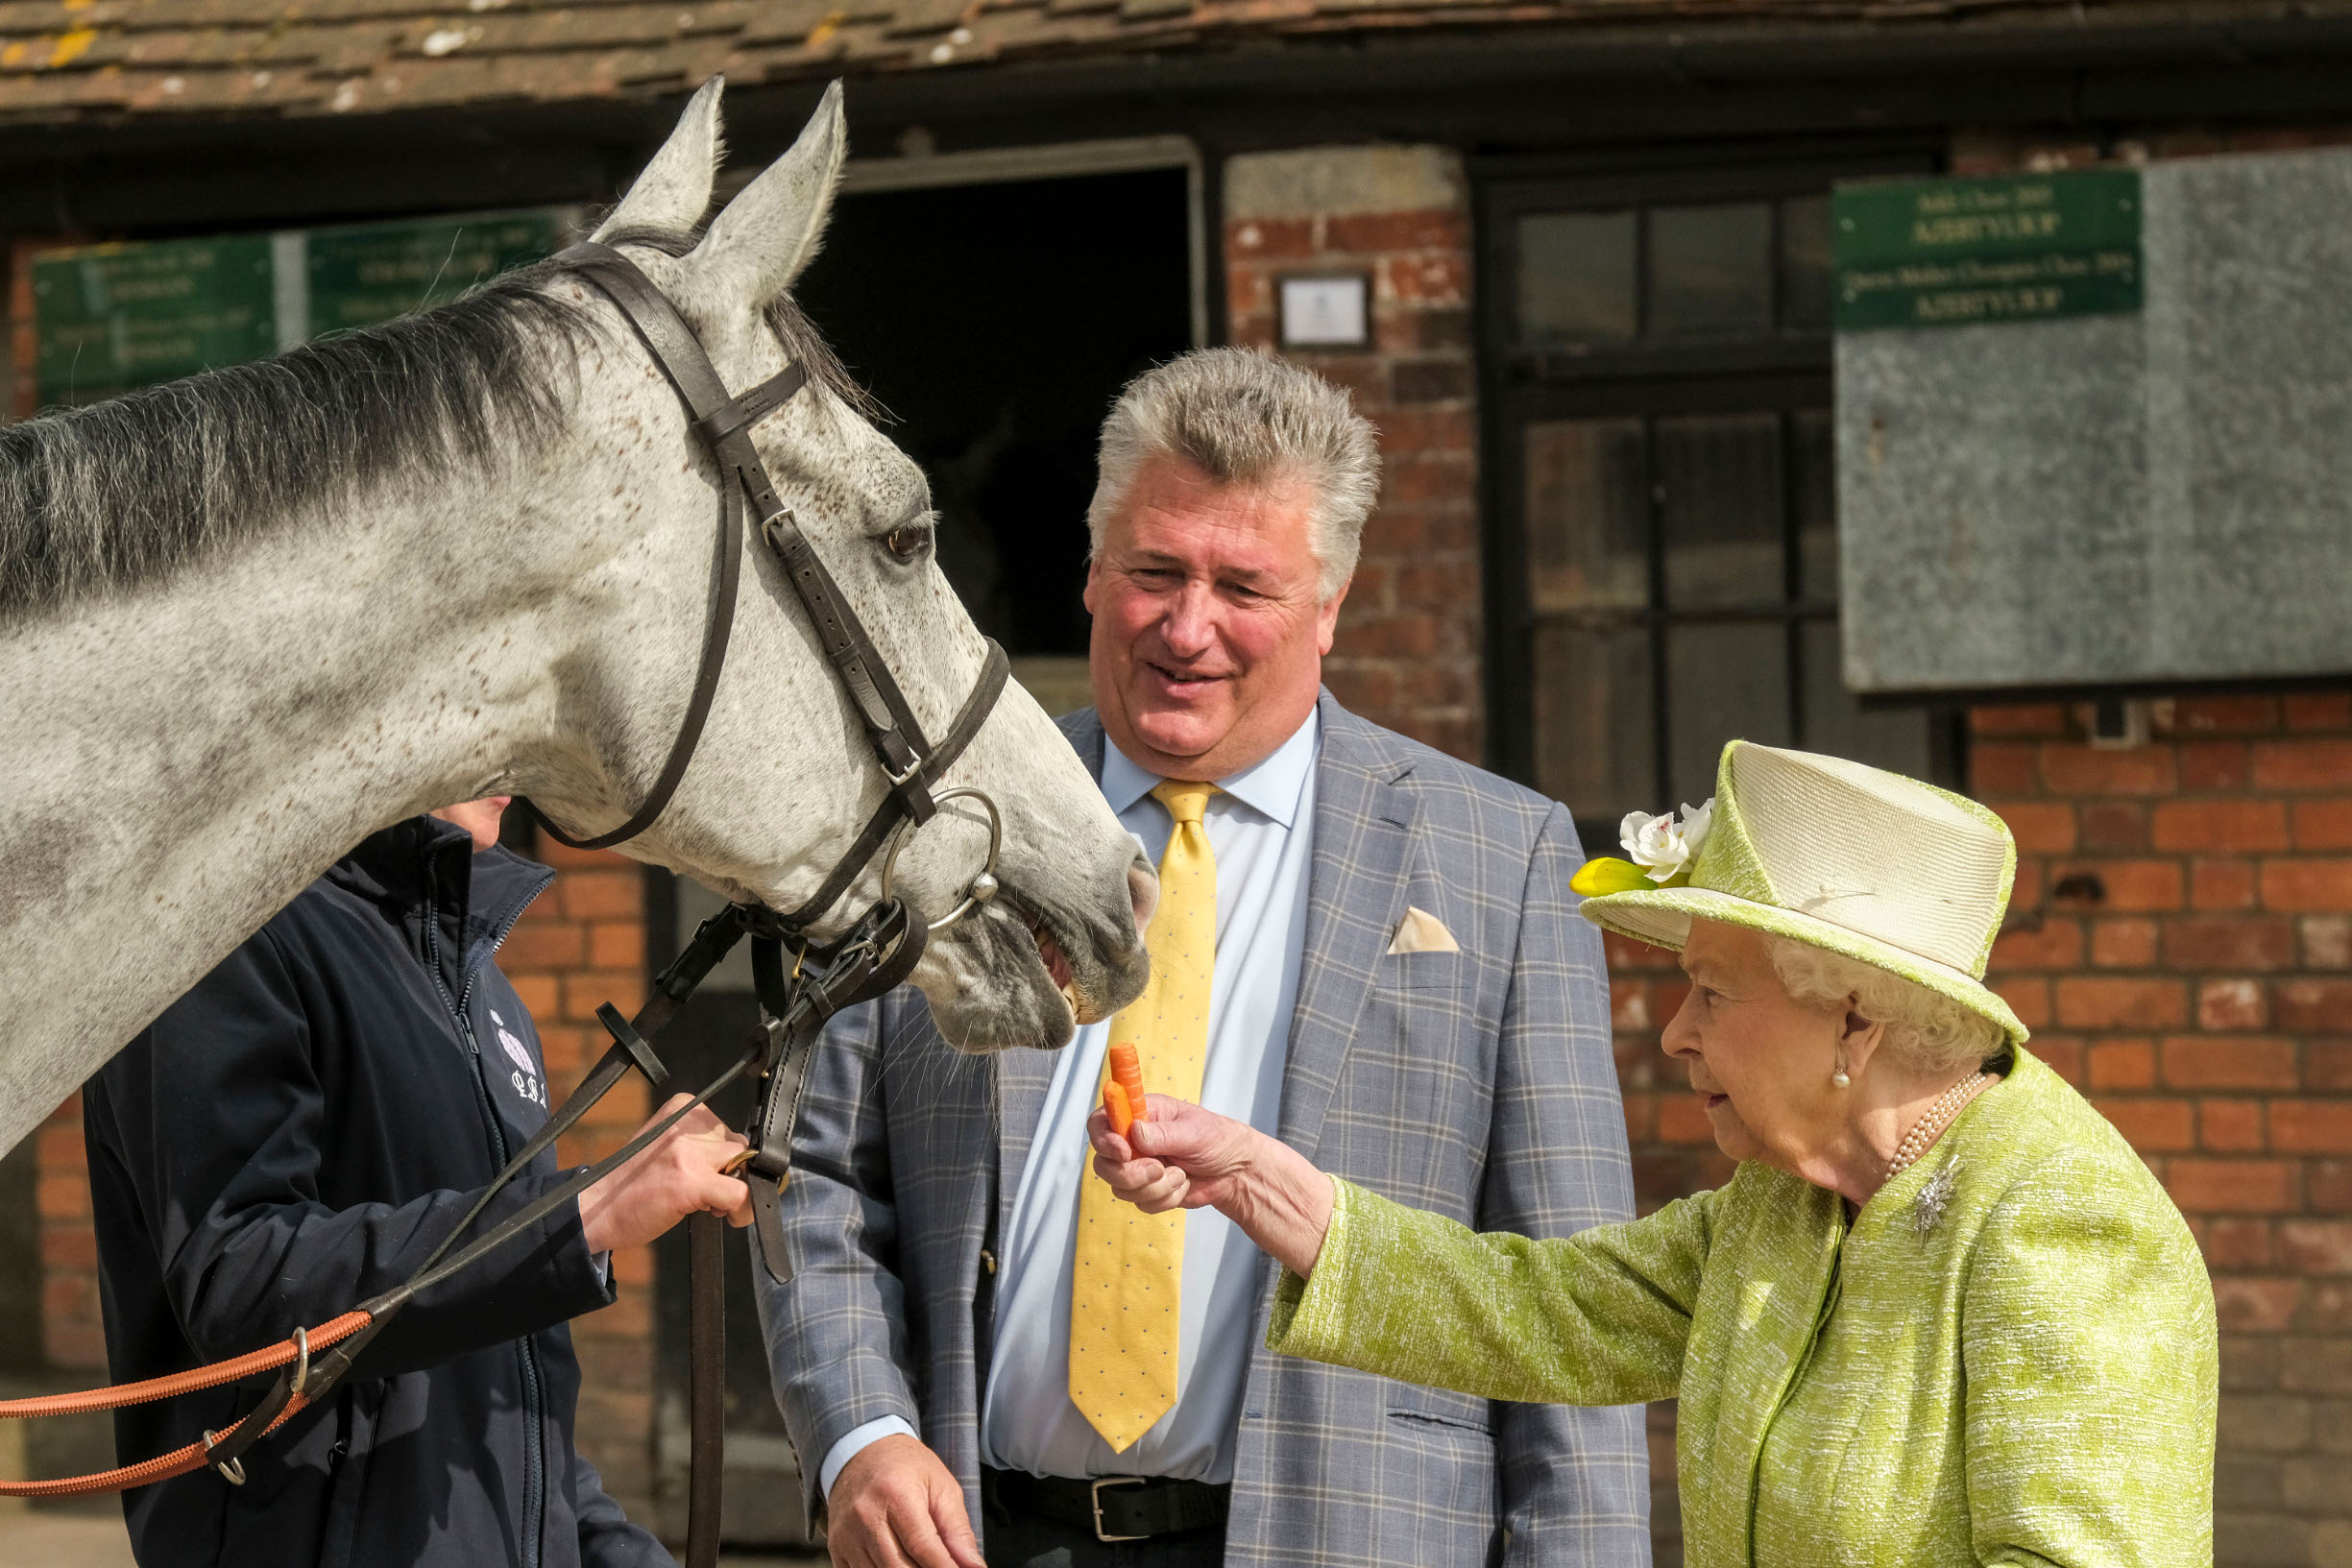 DITCHEAT, UNITED KINGDOM - MARCH 28: Queen Elizabeth II feeds a carrot to horse Politologue as trainer Paul Nicholls (C) looks on during a visit to Manor Farm Stables on March 28, 2019 in Ditcheat, United Kingdom. (Photo by Matt Keeble - WPA Pool/Getty Images)